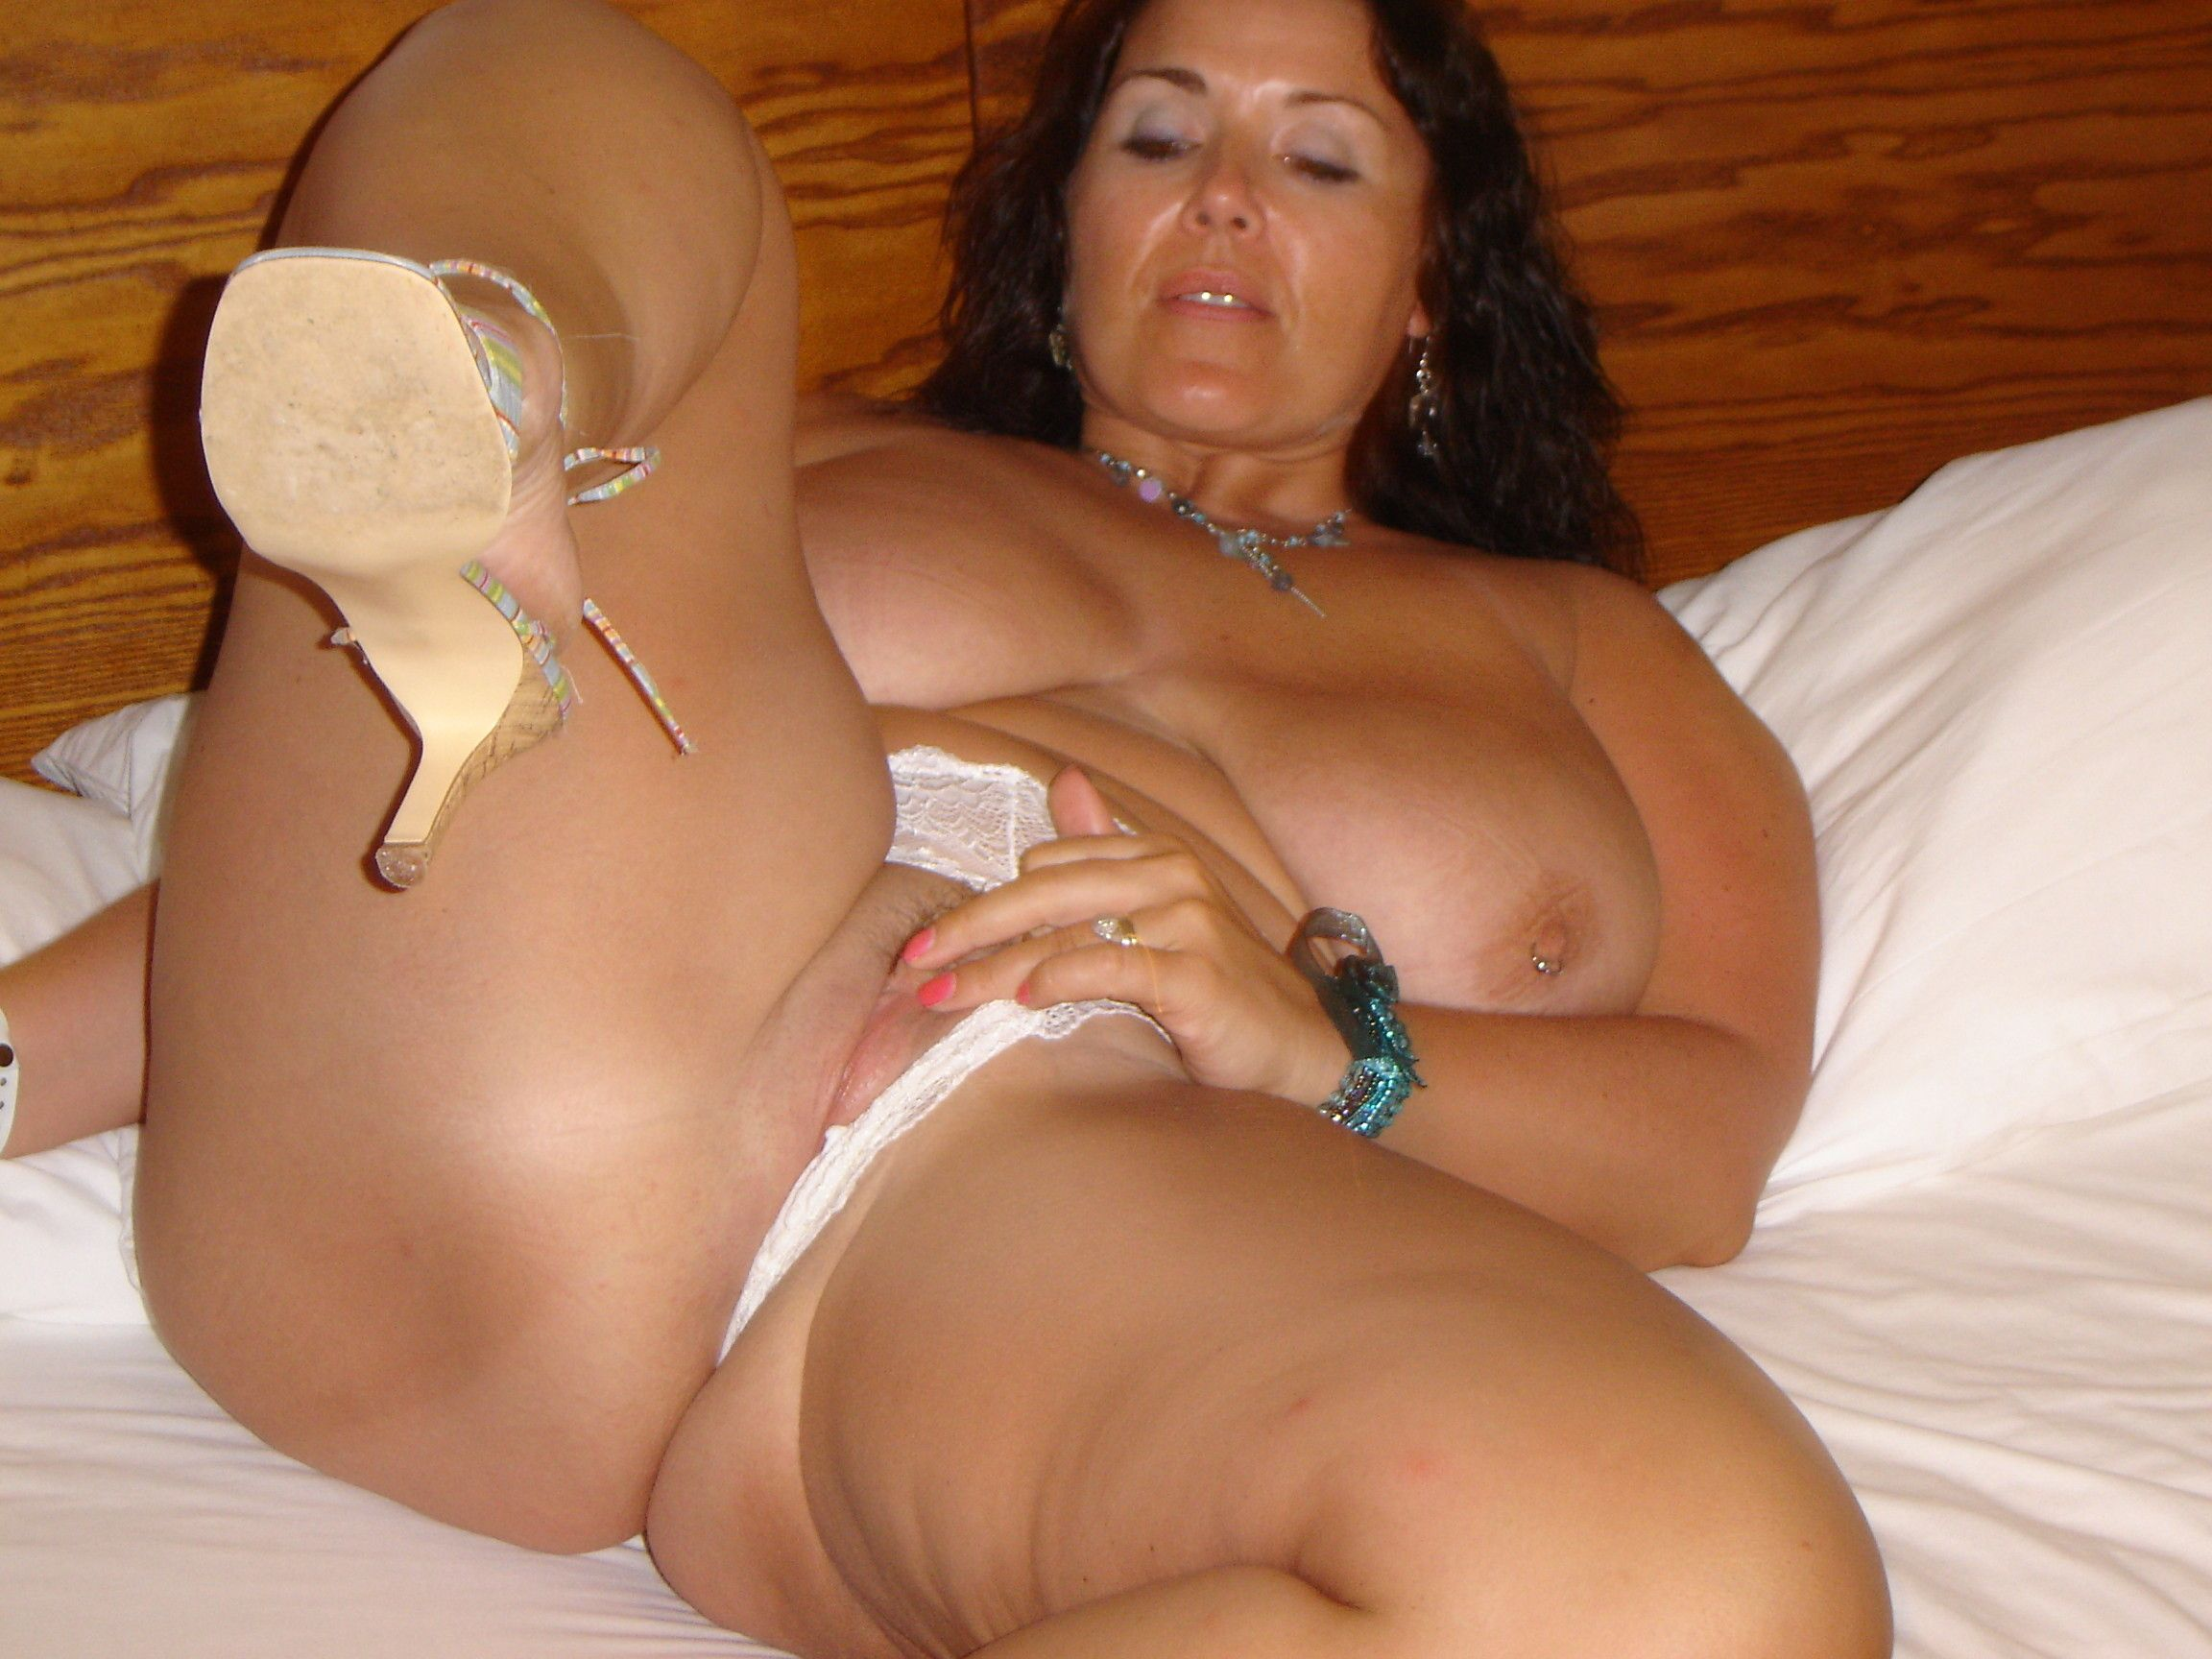 Amateur busty thick nude milfs